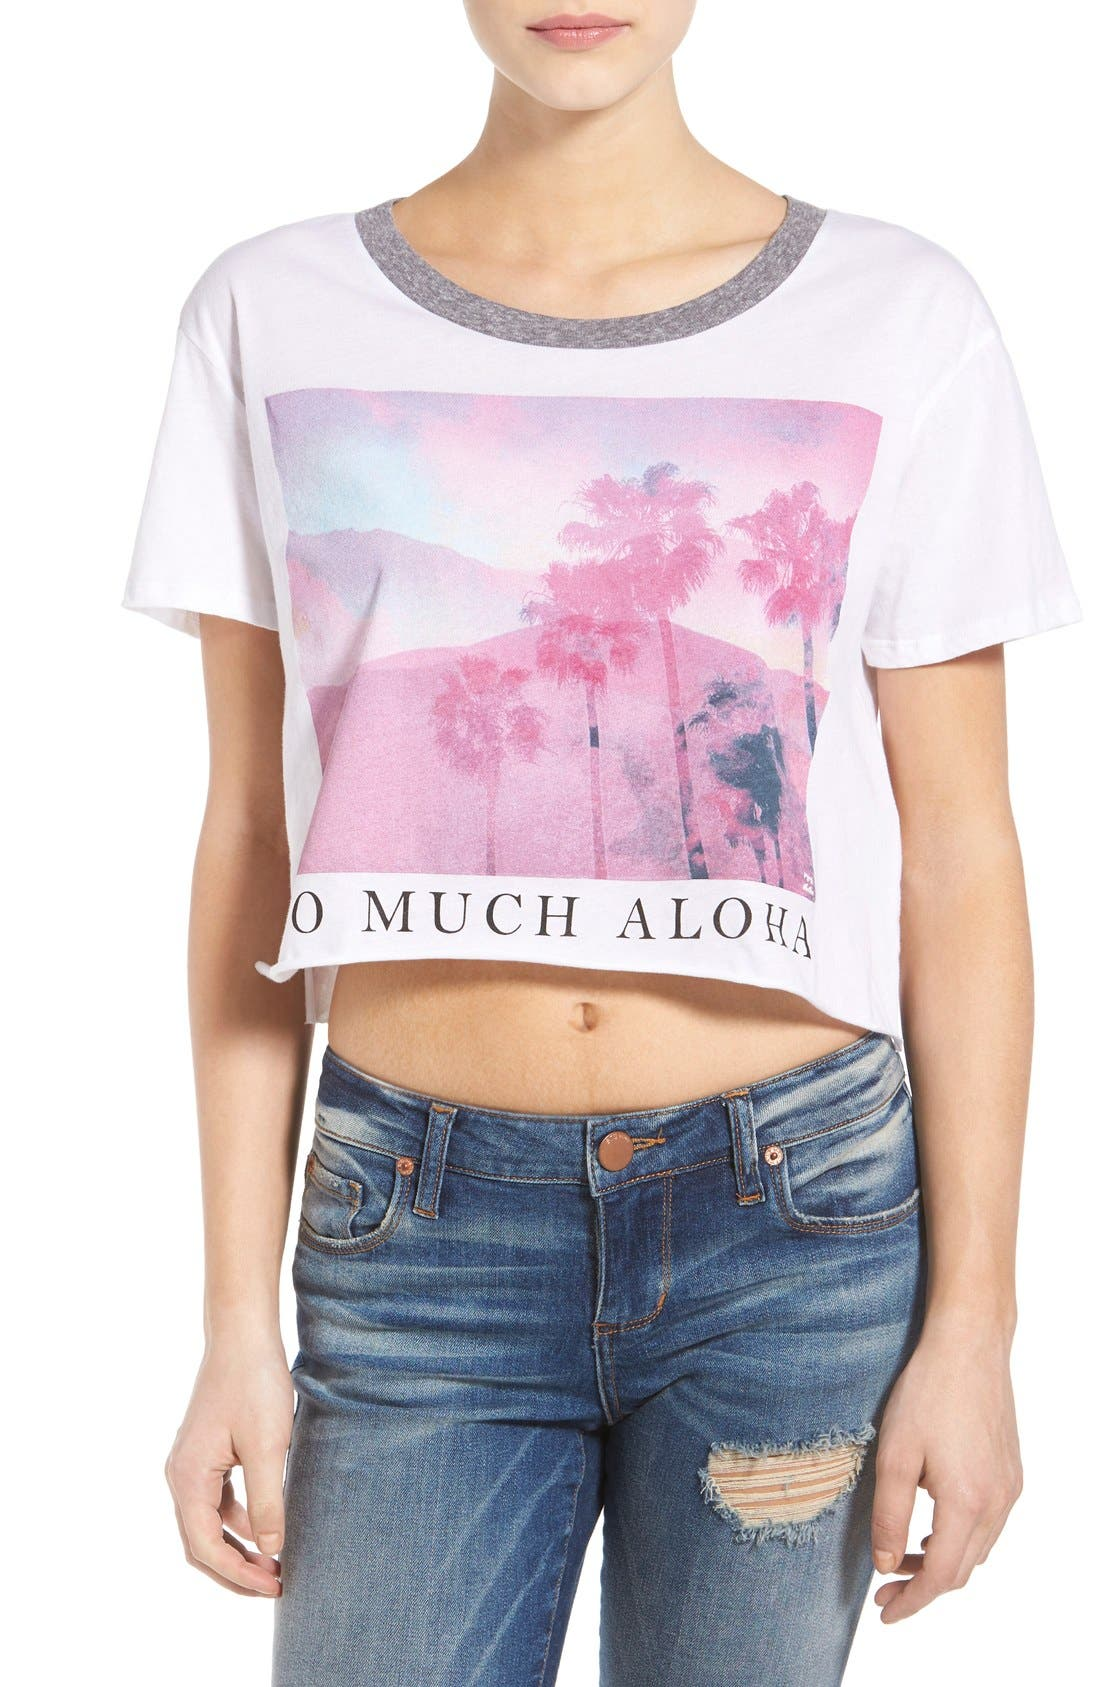 Alternate Image 1 Selected - Billabong 'So Much Aloha' Graphic Crop Tee